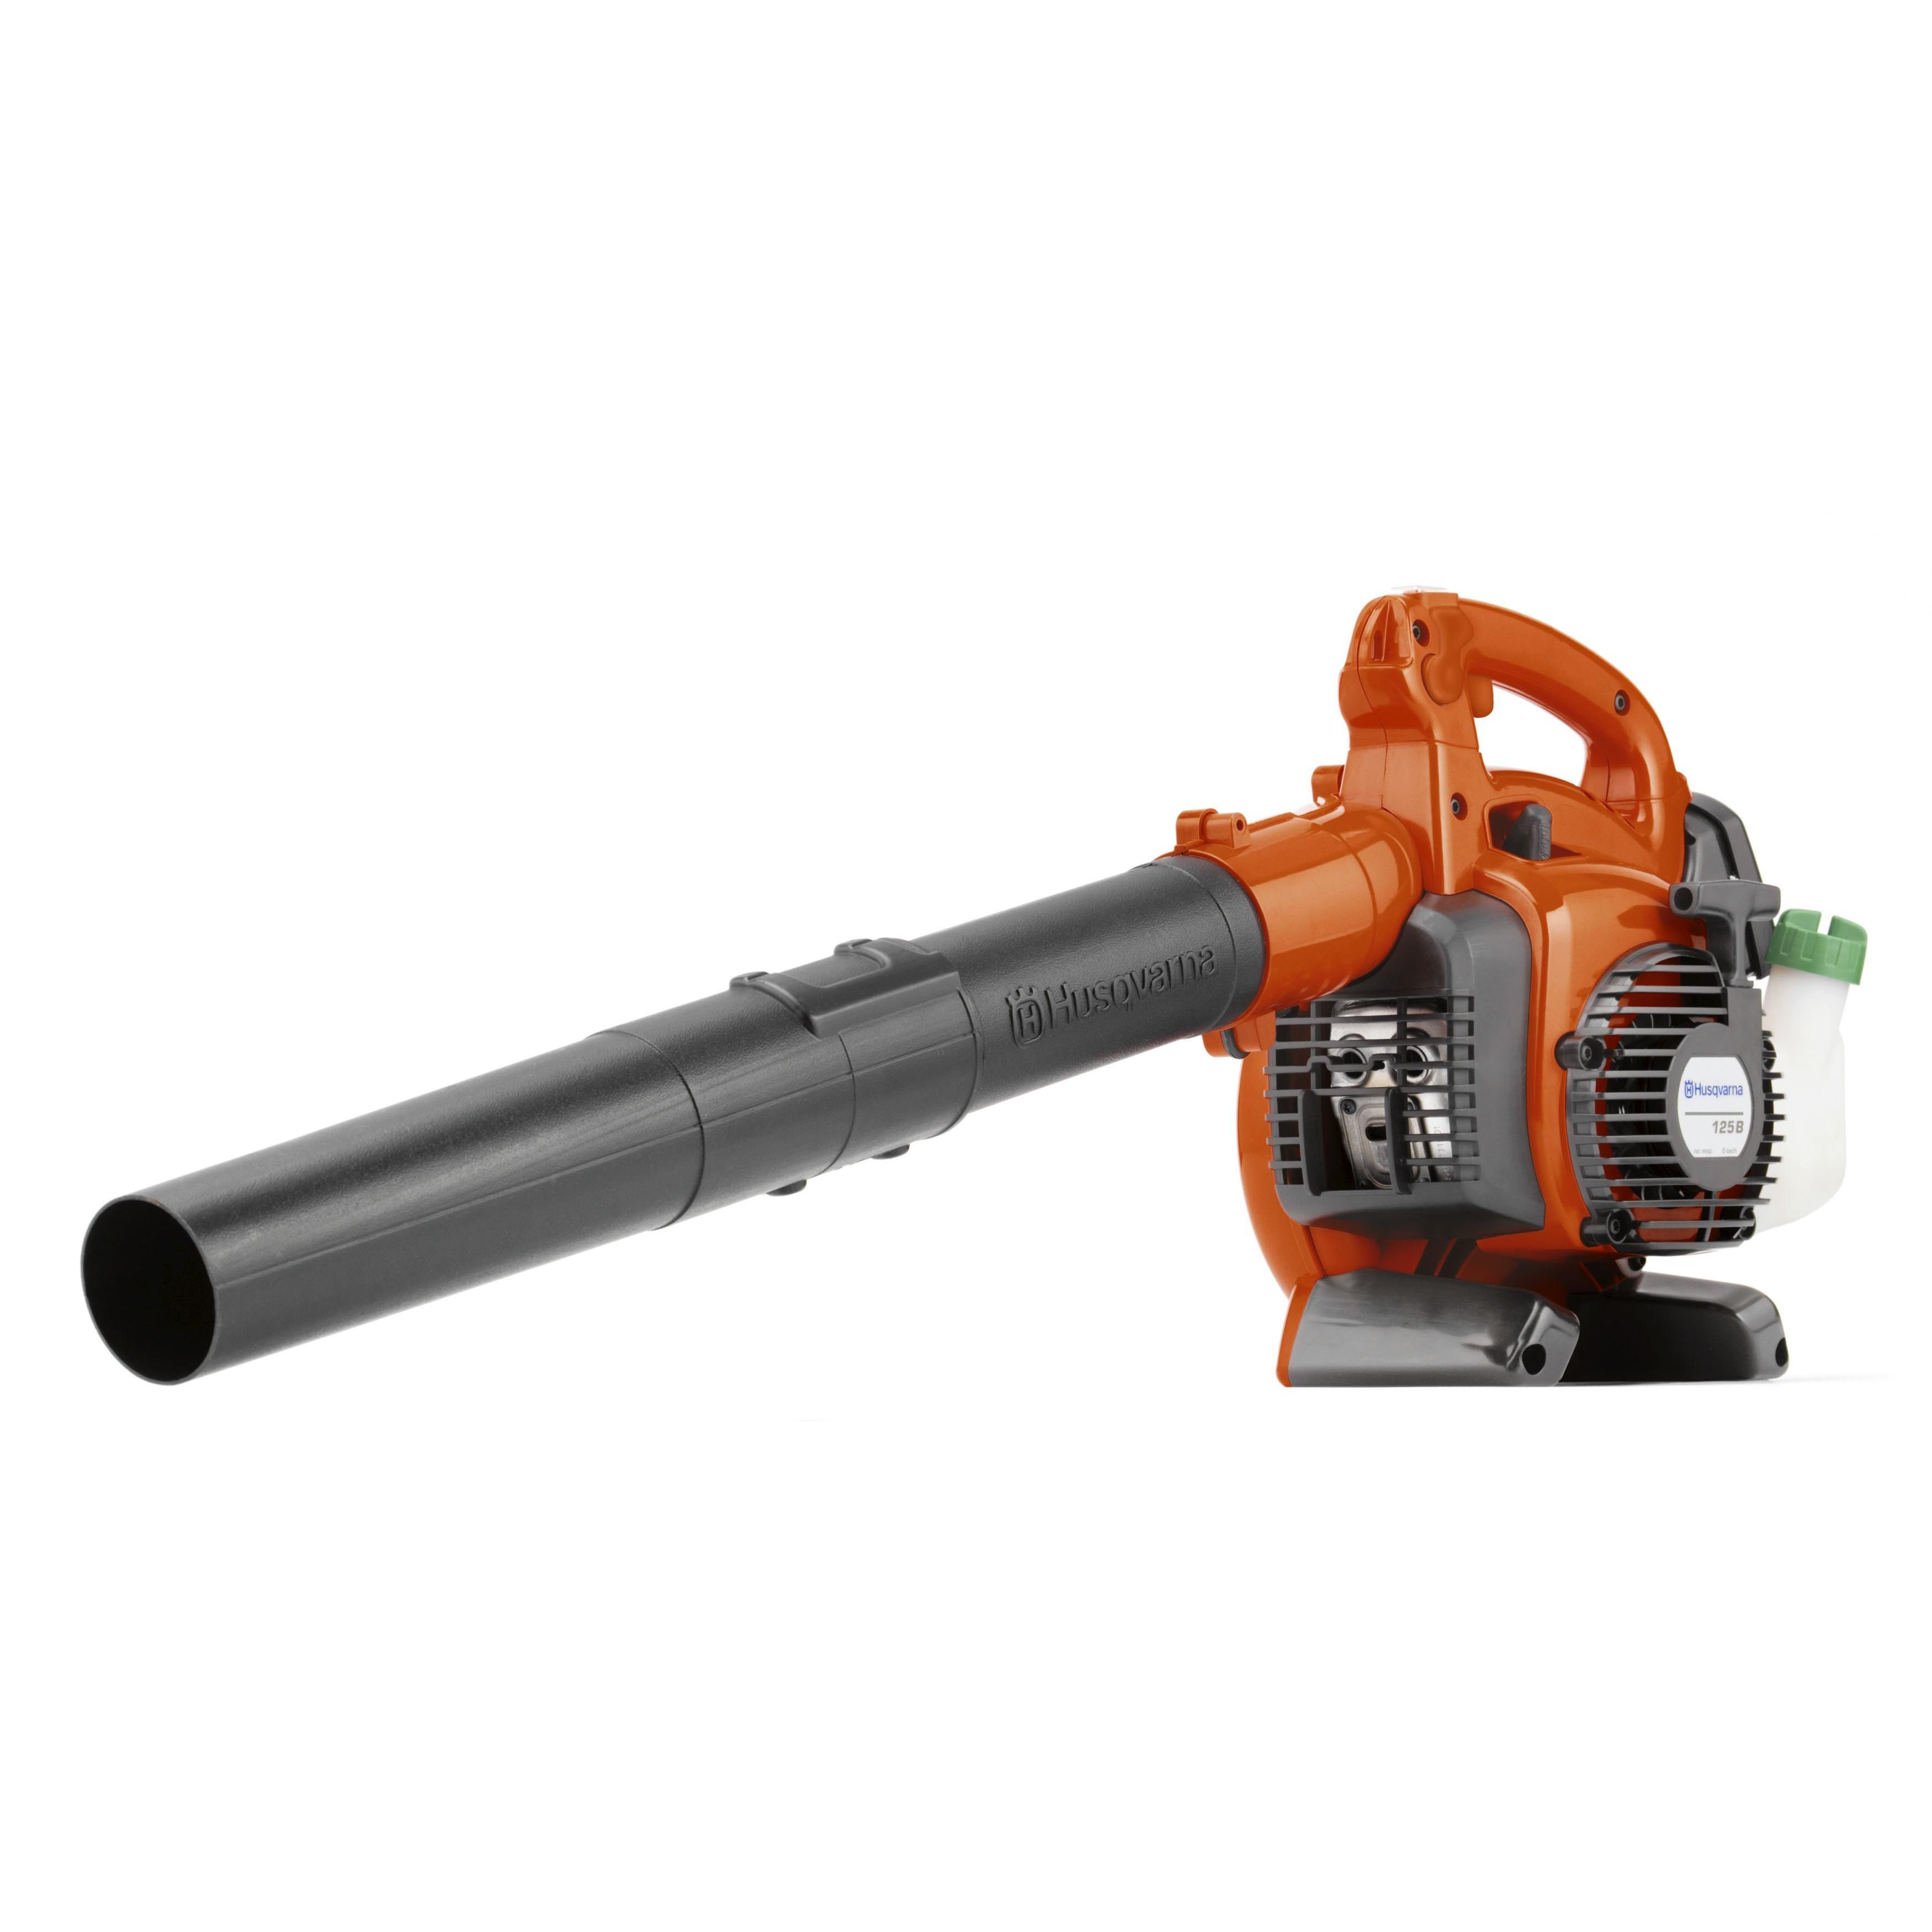 Best Gas Leaf Blower 2019 Best Gas Leaf Blower Reviews and Buying Guide of 2019 | Leaf